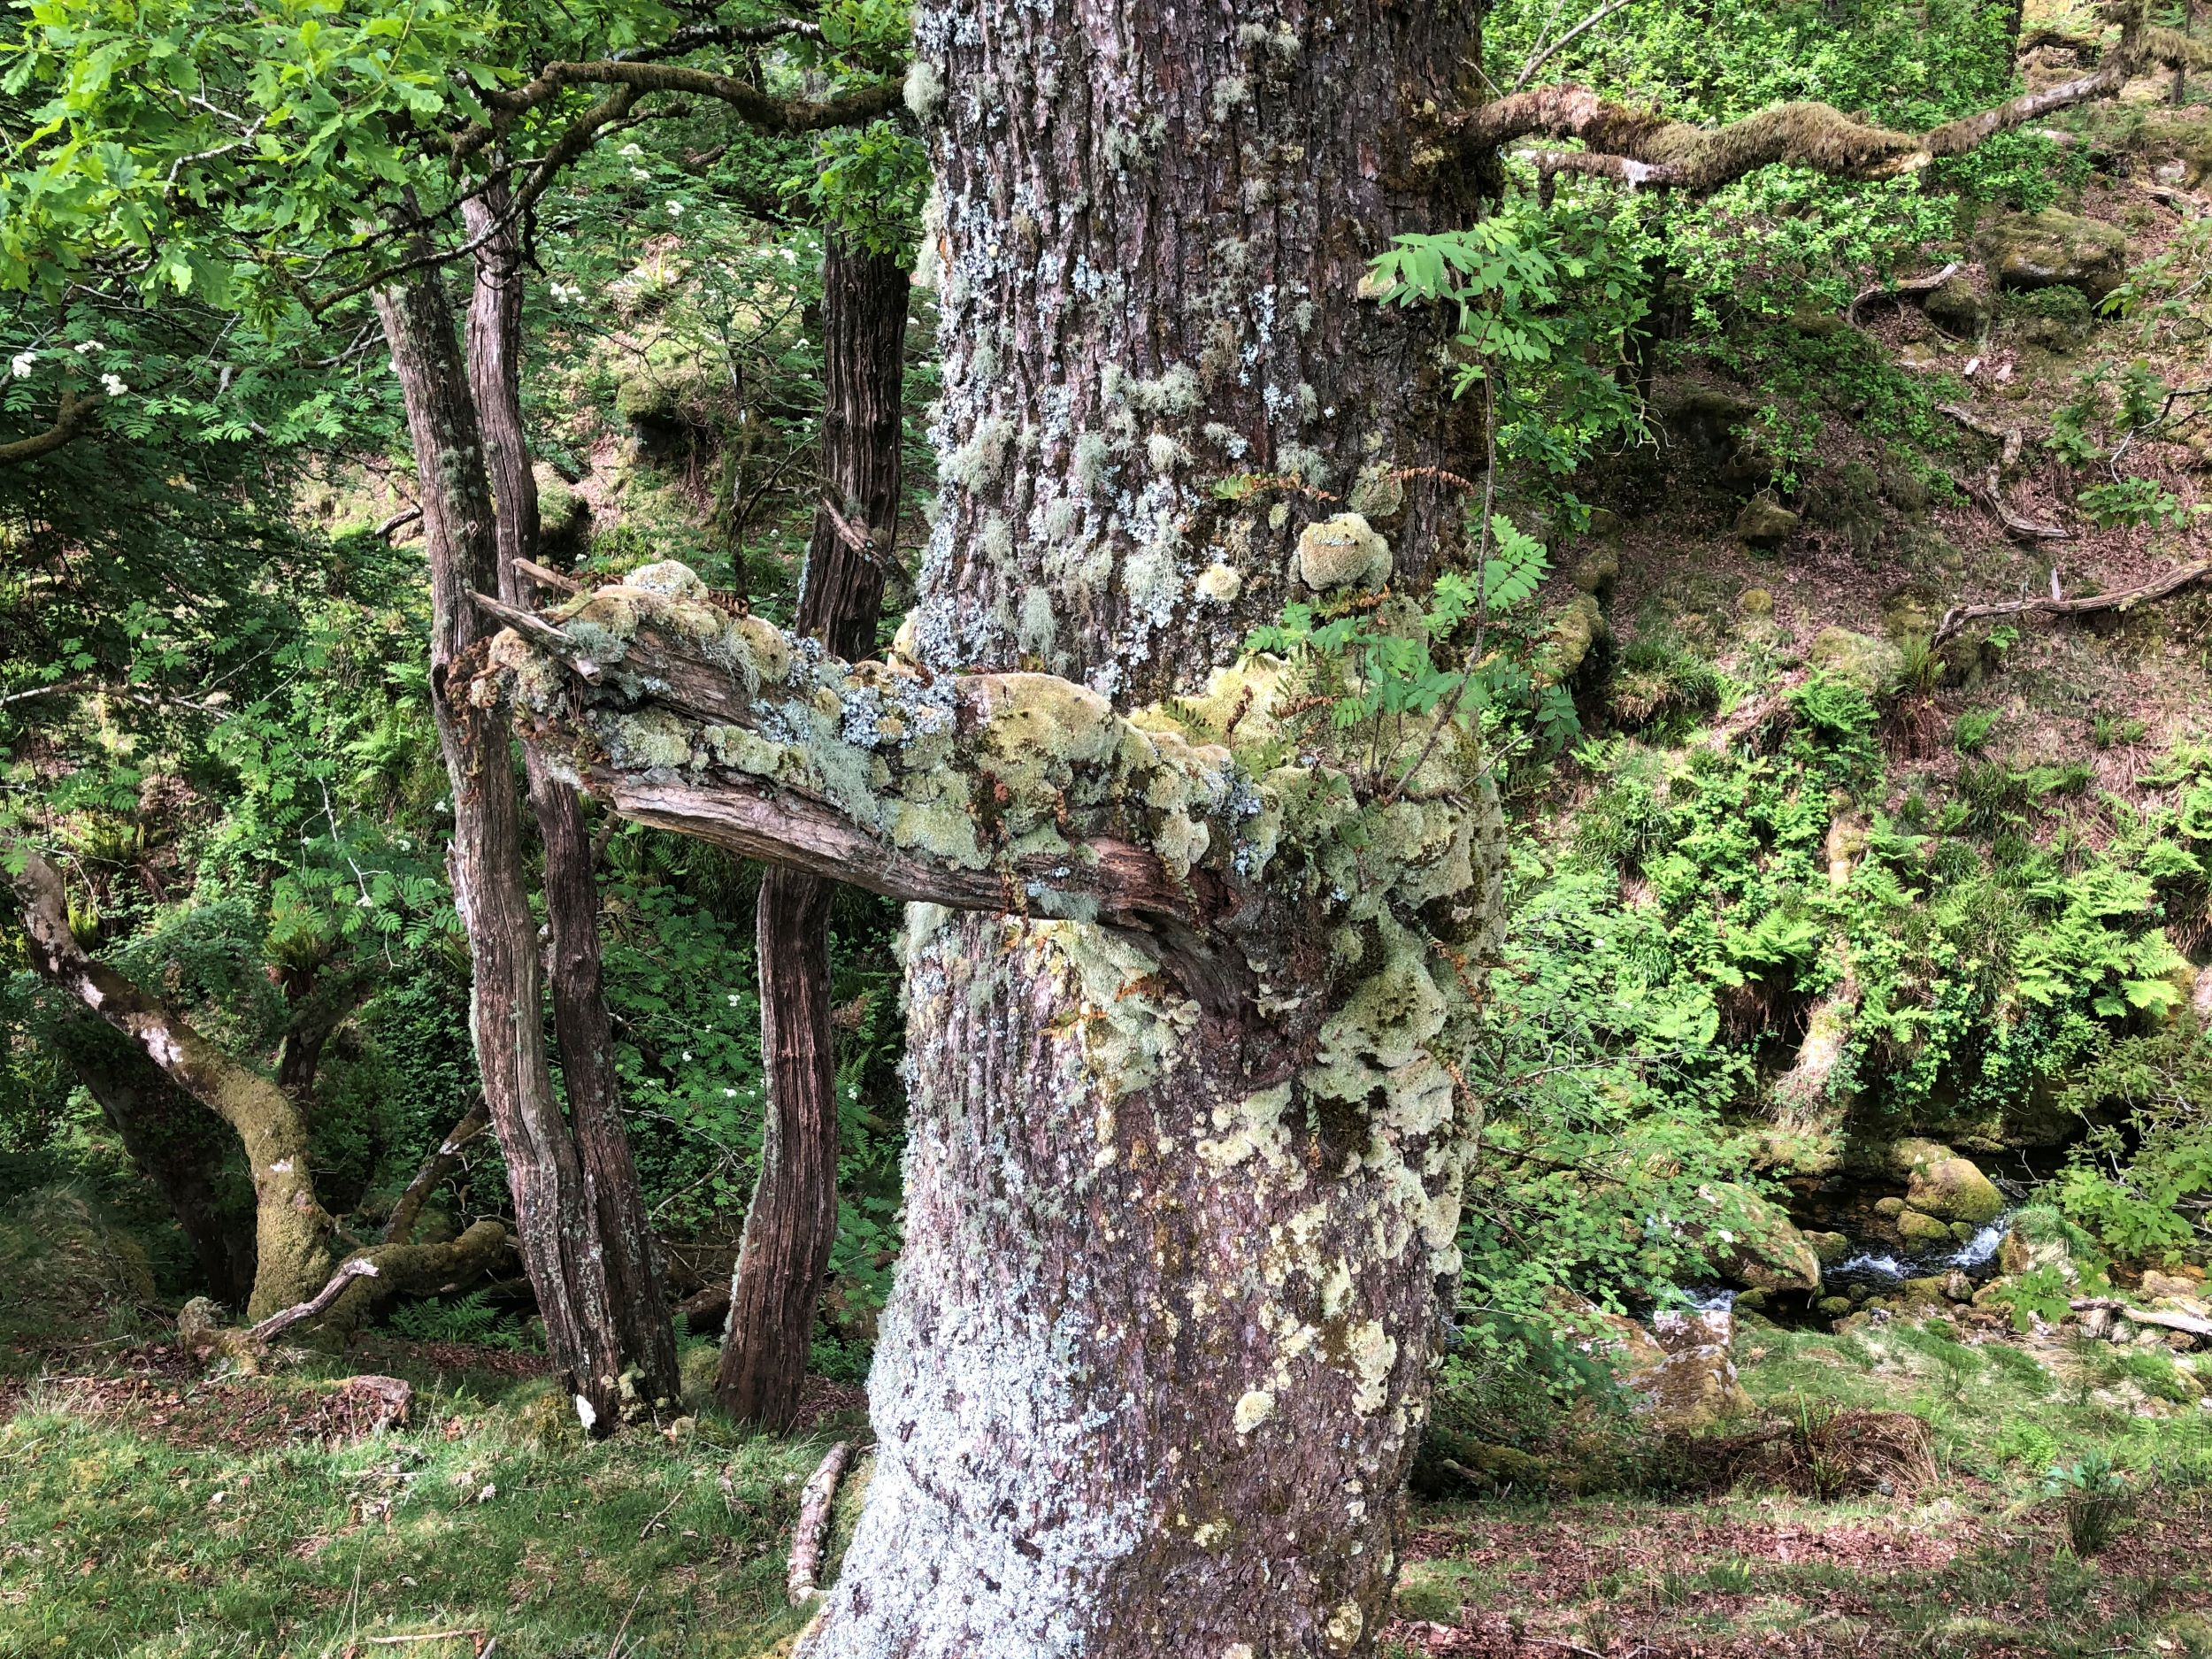 The Giving Trees | Discovering Tree Communities on Tours